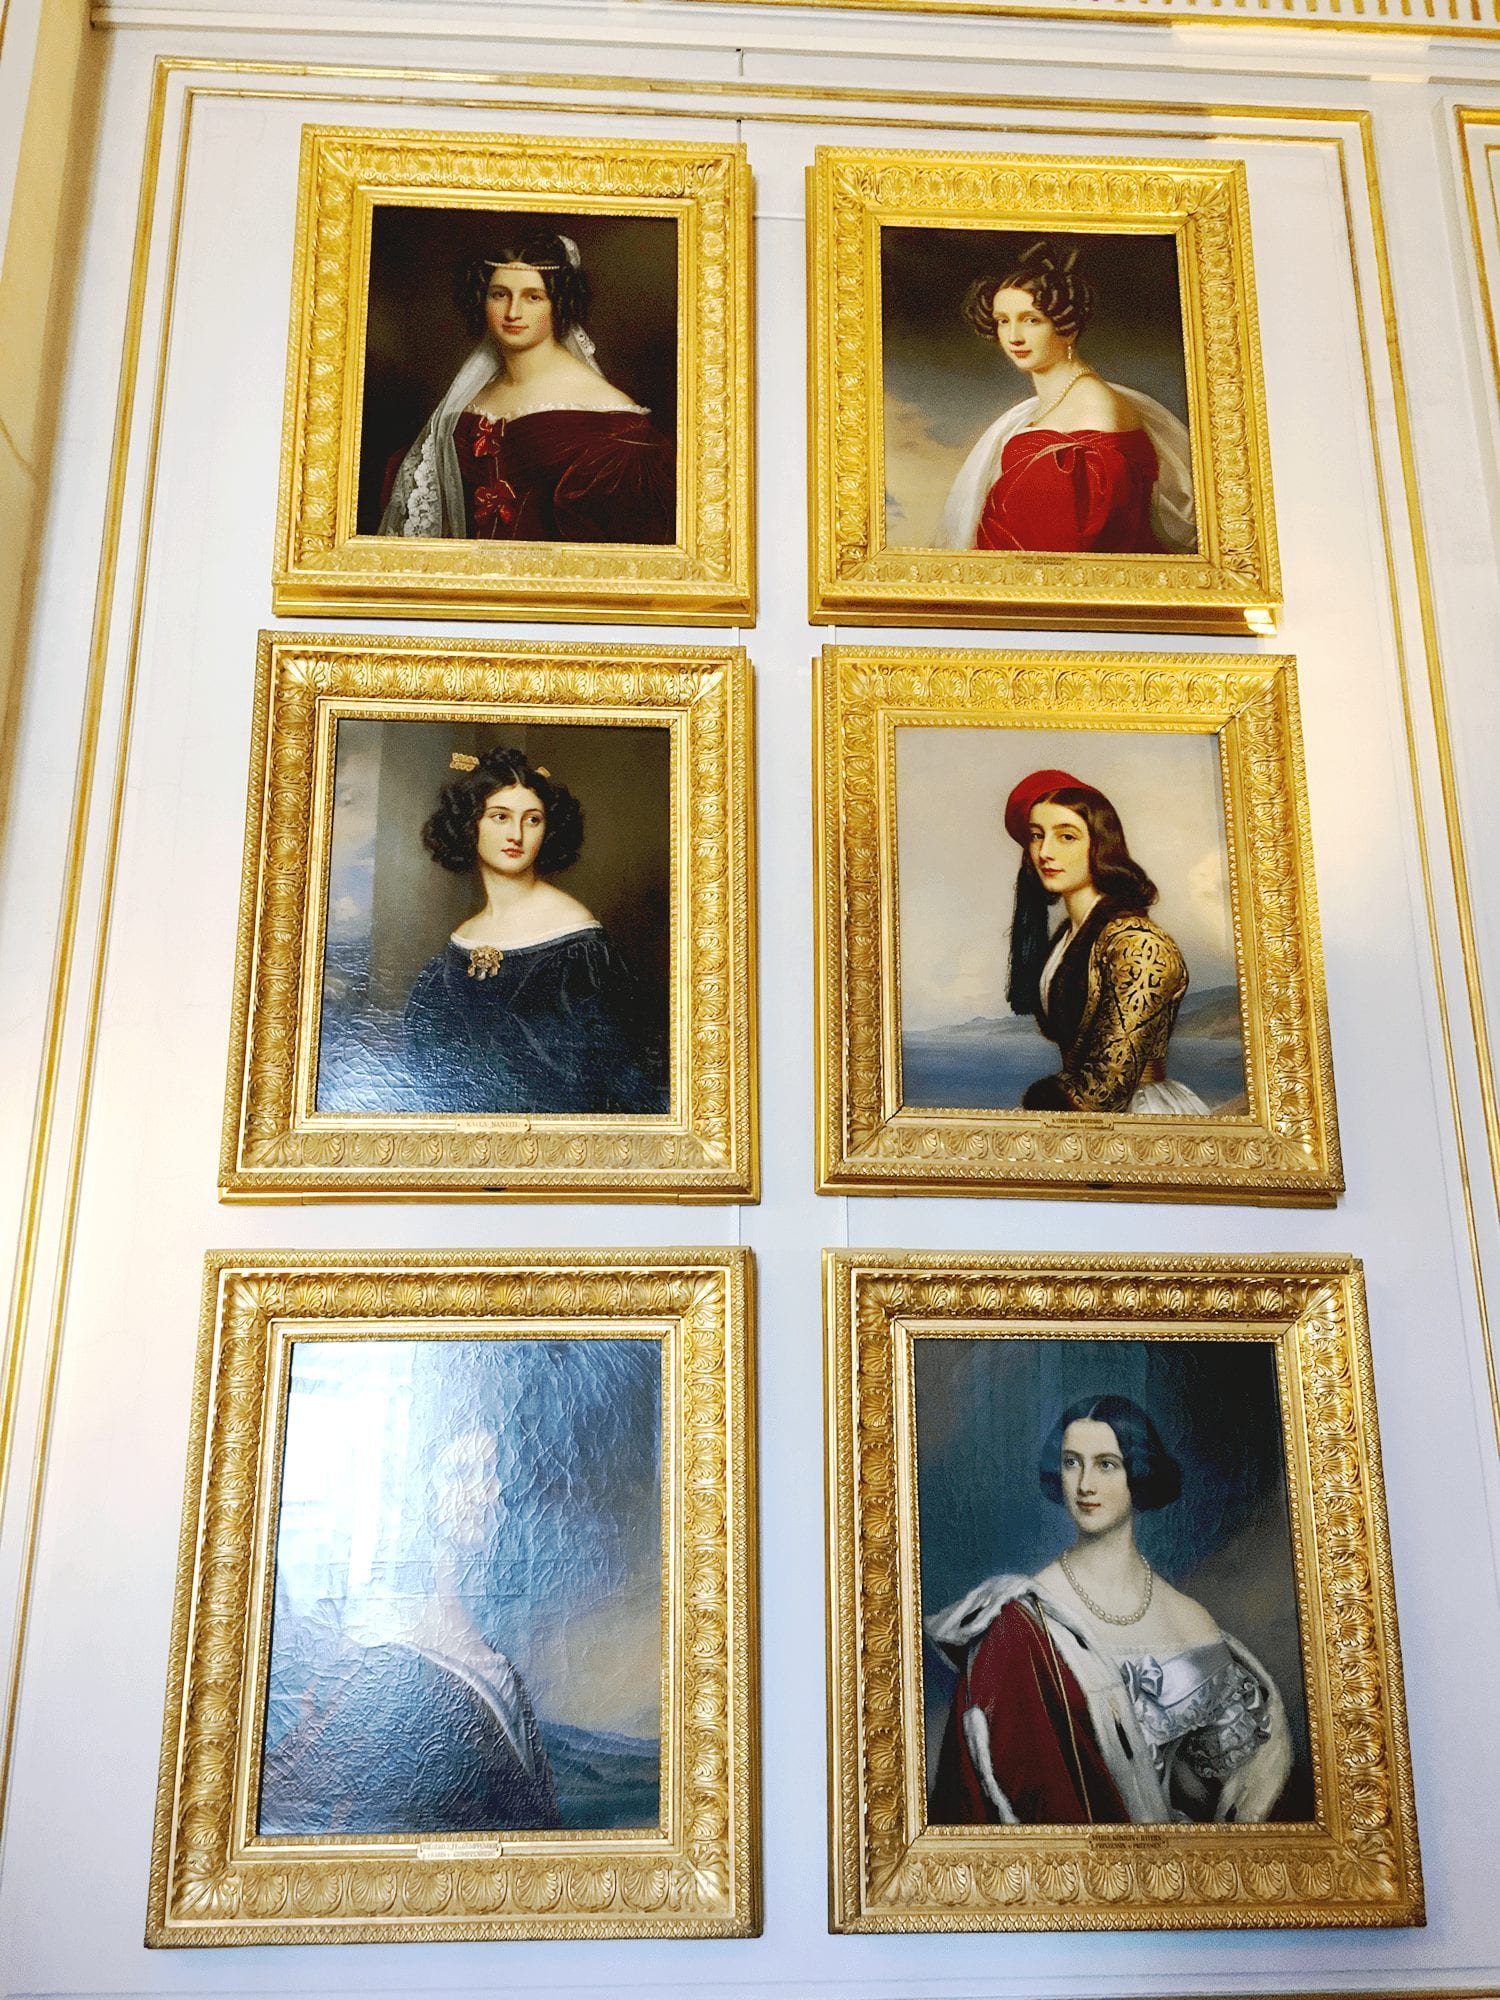 King Ludwig I's Gallery of Beauties